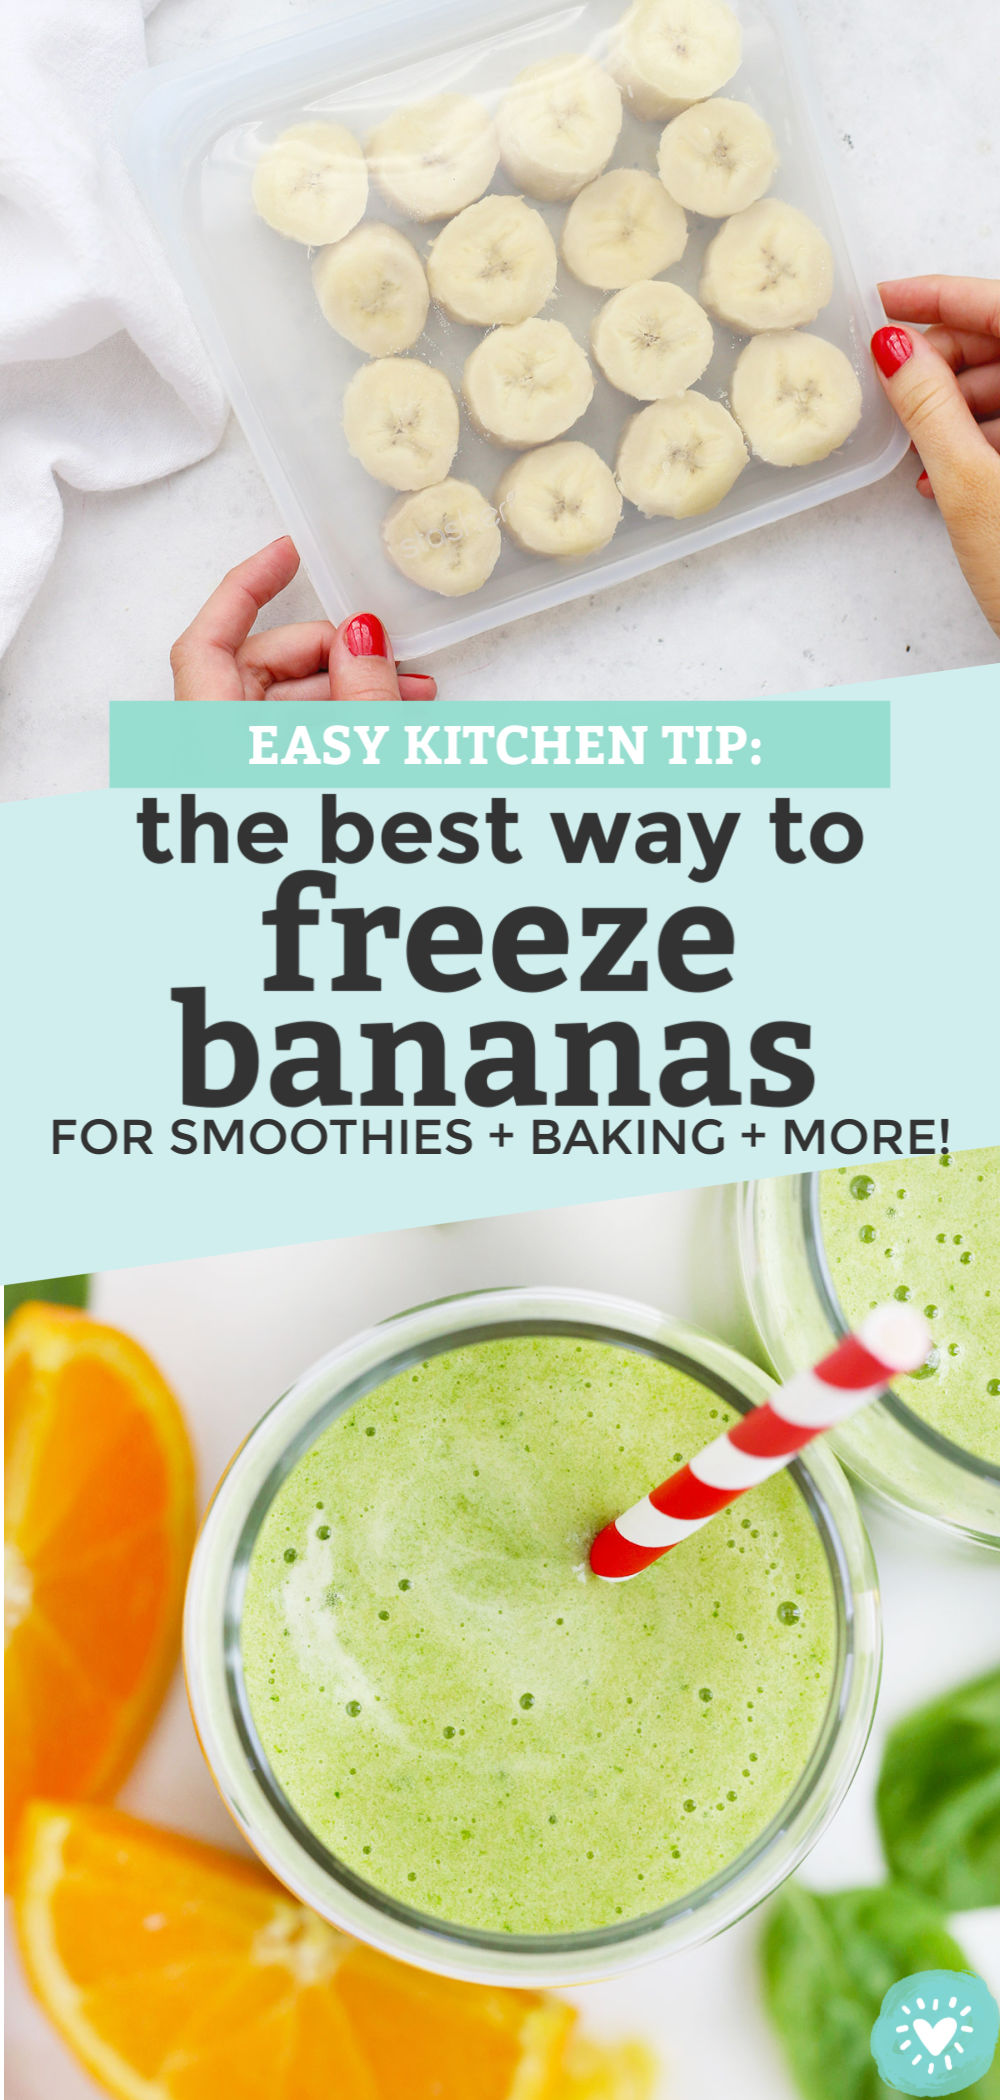 How to Freeze Bananas tutorial from One Lovely Life